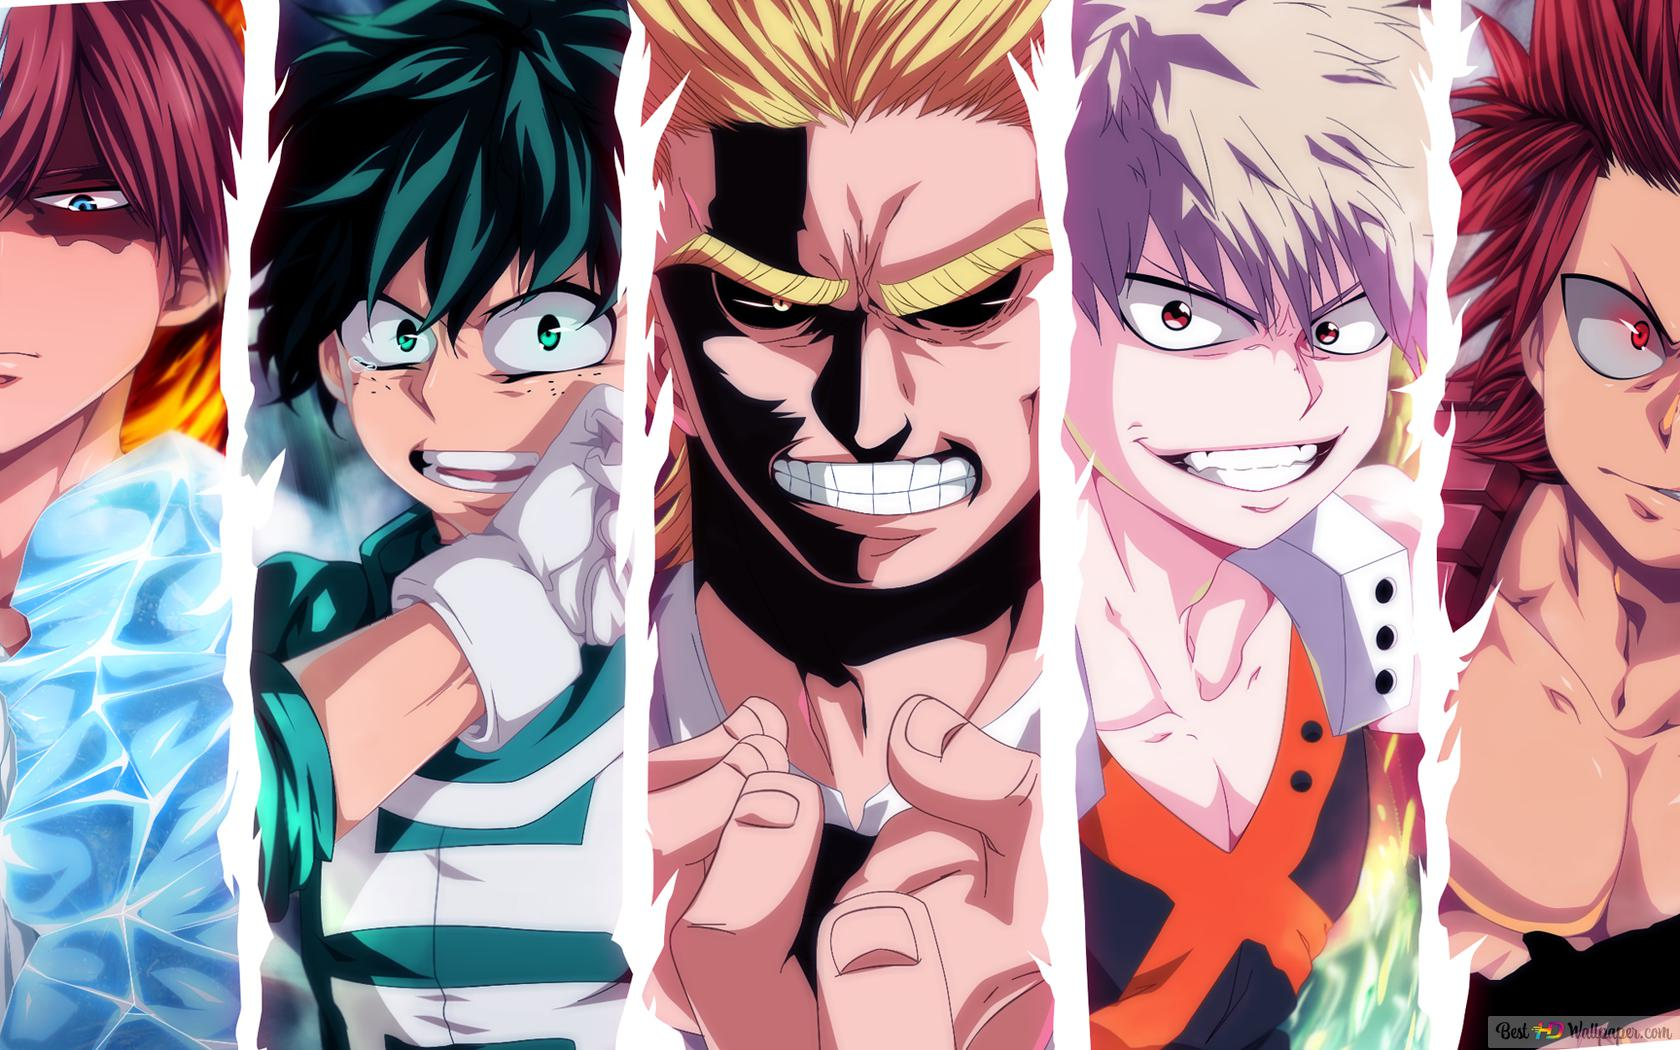 My Hero Academia All Might Katsuki Bakugo Eijiro Kirishima Izuku Midoriya Shoto Todoroki Hd Wallpaper Download 4k deku and todoroki wallpapers. all might katsuki bakugo eijiro